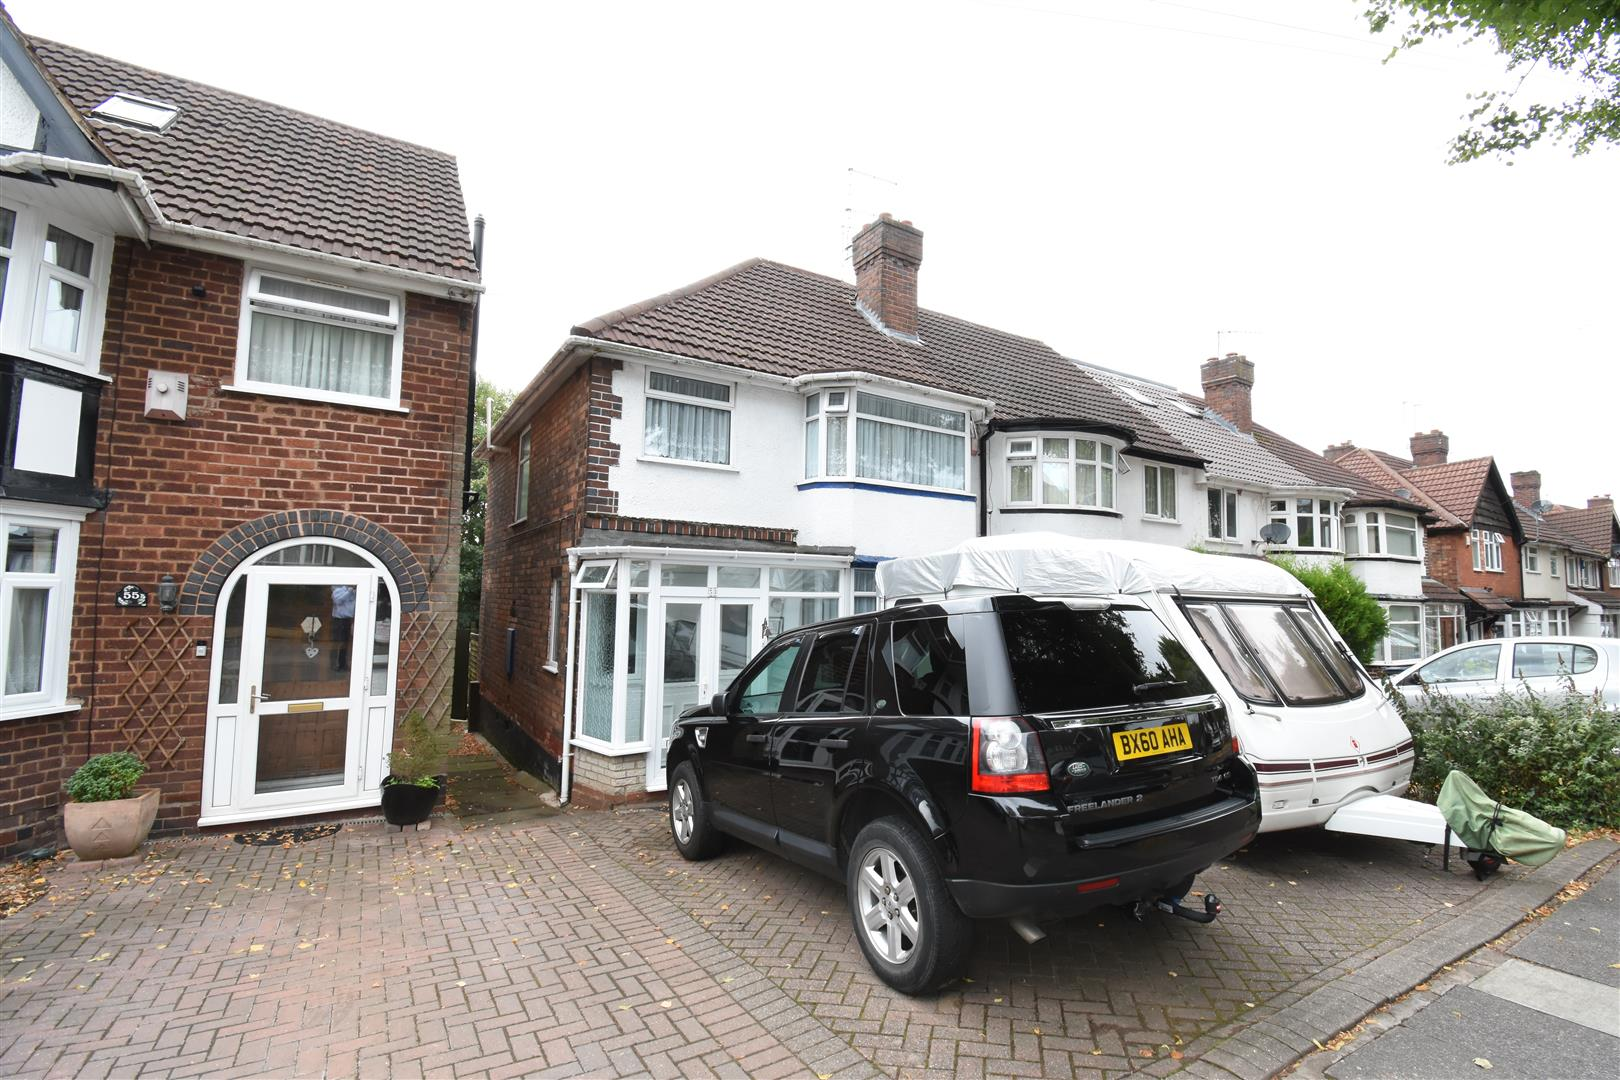 3 bed house for sale in Old Farm Road, Stechford, Birmingham, B33